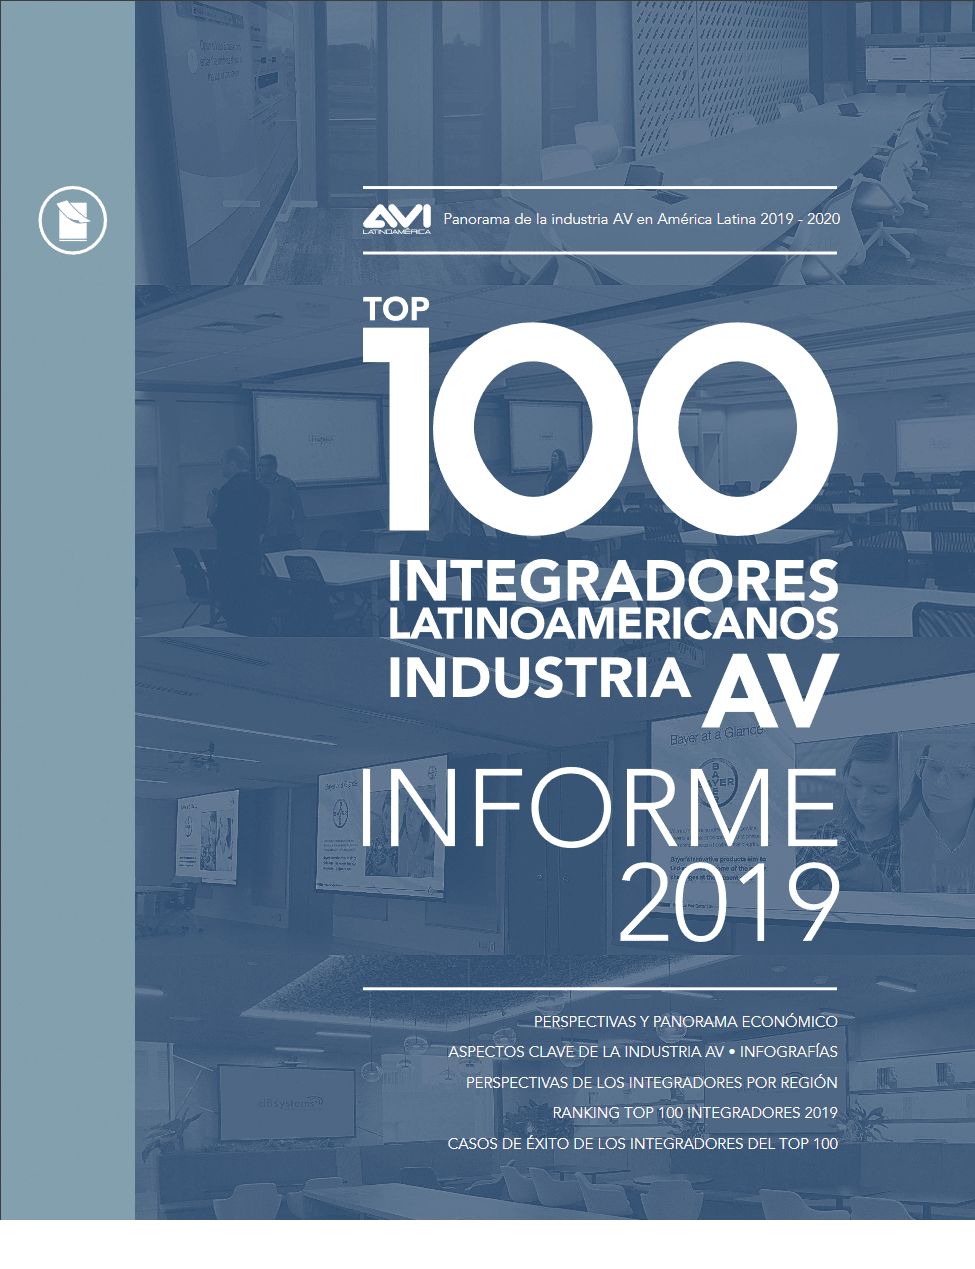 TOP 100 INTEGRADORES SISTEMAS A/V MULTIMEDIA • 2019-2020 Image